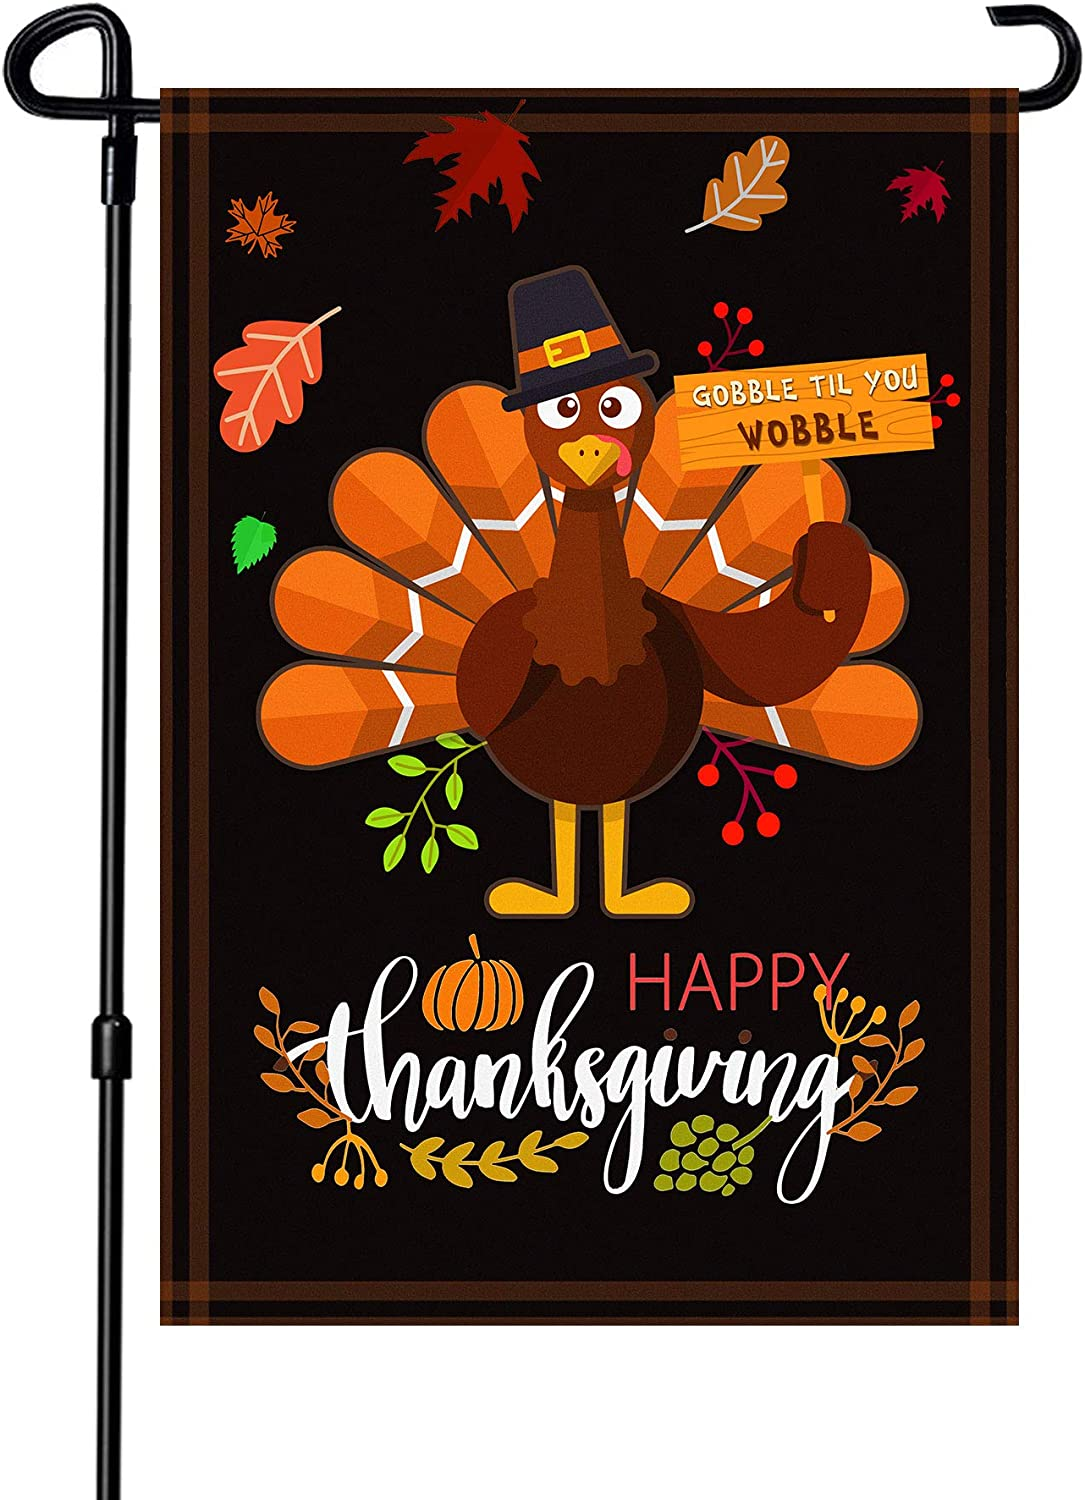 BOUTIQUE_GOODS Thanksgiving Garden Flag,Happy Thanksgiving Flags 12.5 x x 18 Inch Thanksgiving House Flag Double-Sided 2 Layer Thanksgiving Turkey House Flag for Thanksgiving Decoration